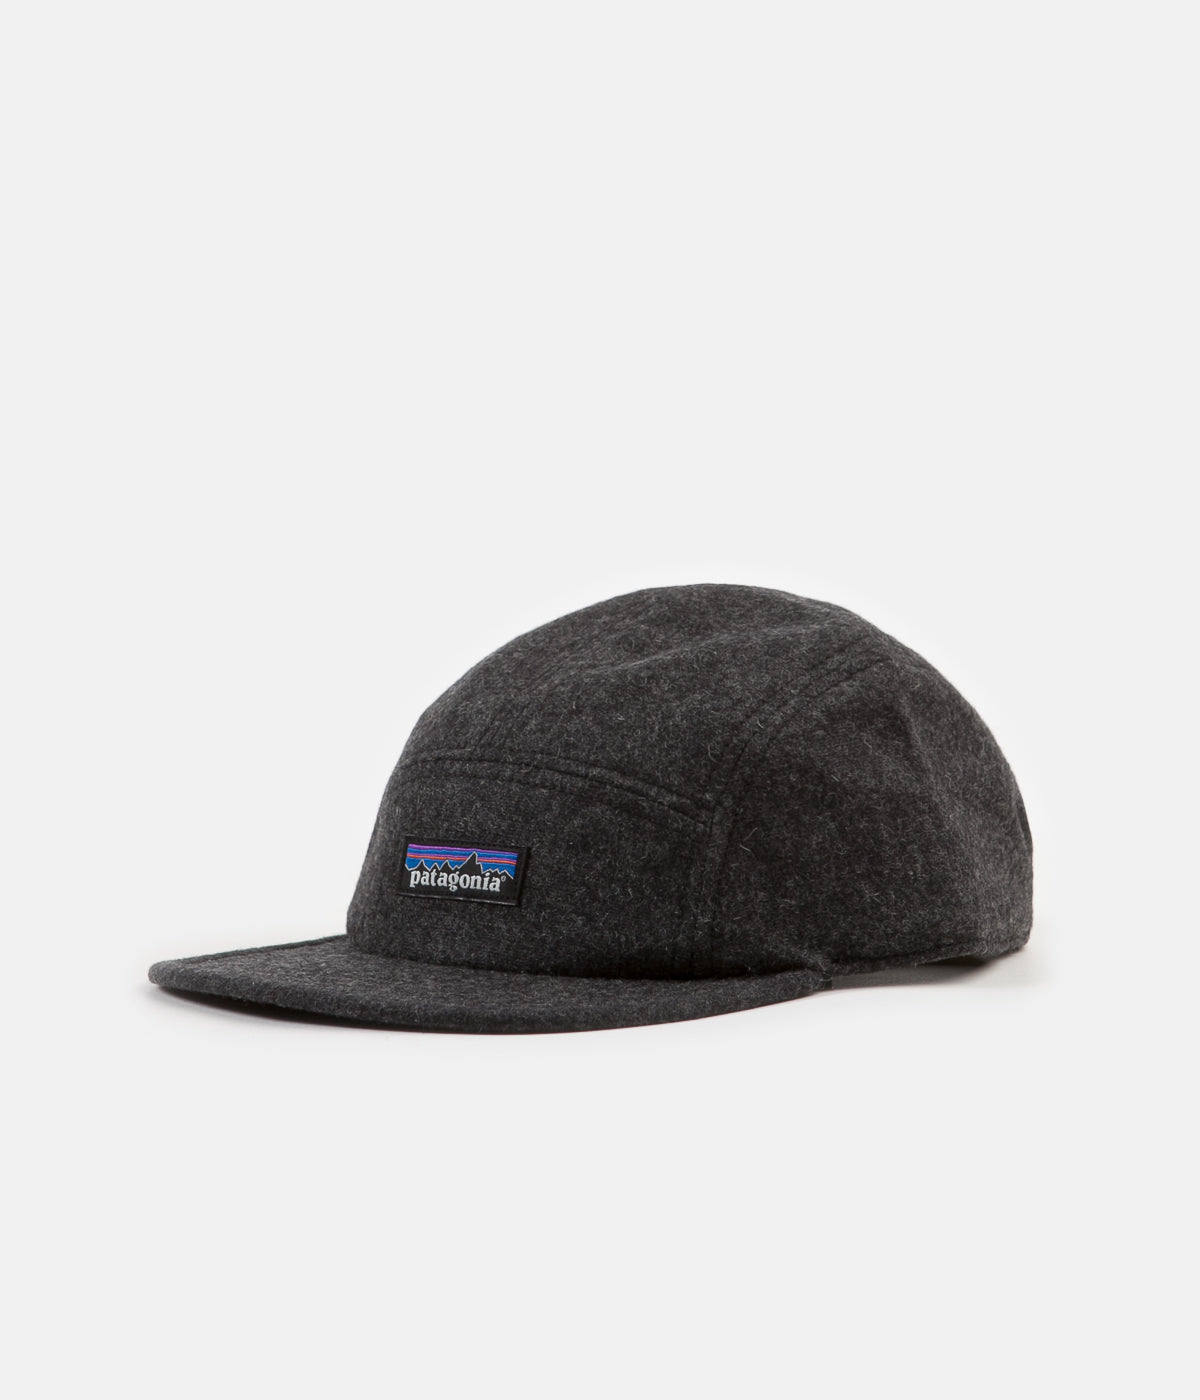 fbc6ac41a2d Patagonia Recycled Wool Cap - Forge Grey